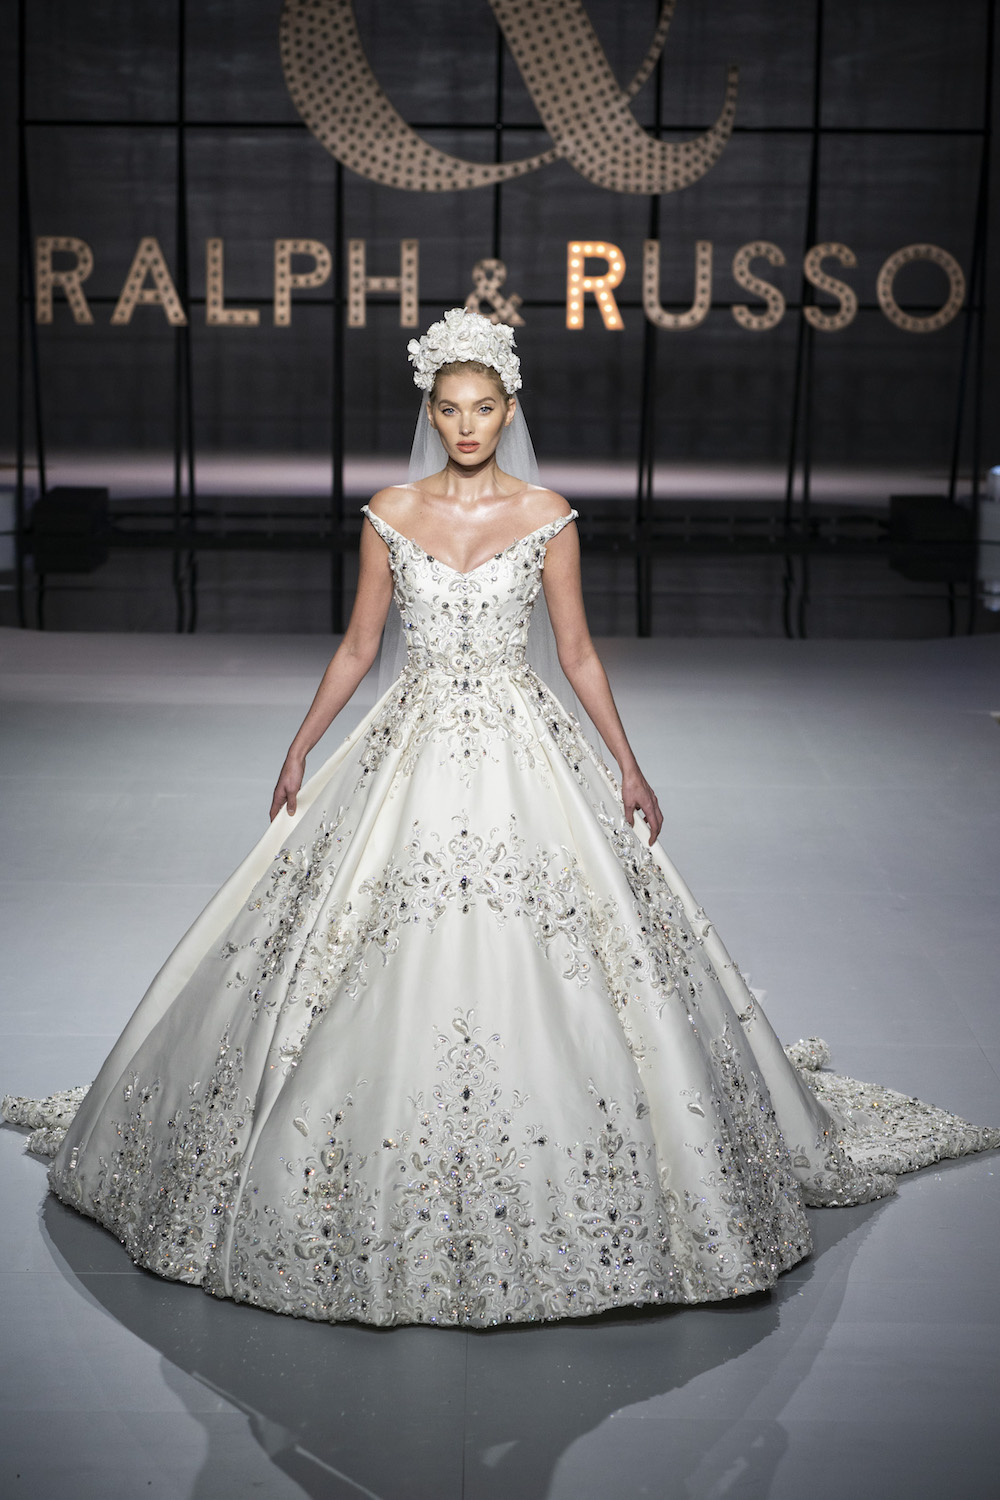 bst haute couture ralph & russo 4